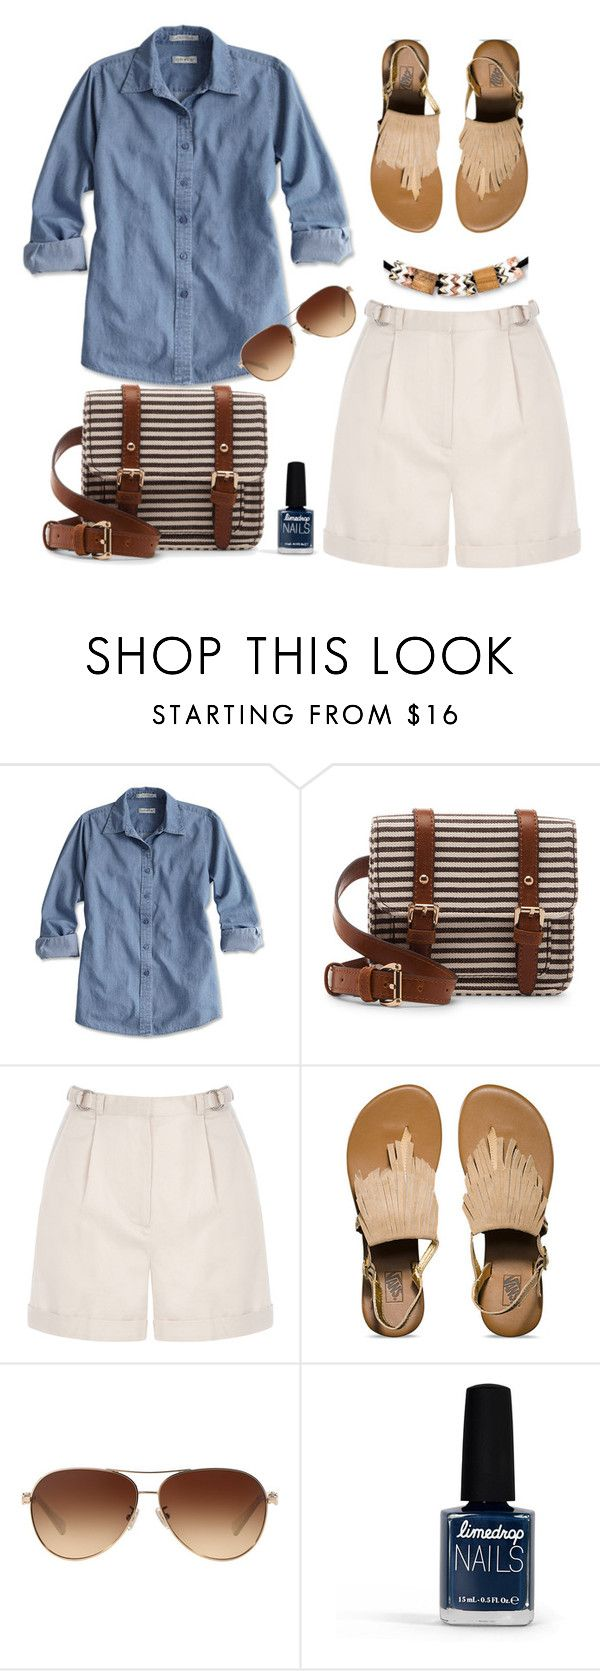 """Denim Shirt"" by ana-angela ❤ liked on Polyvore featuring Sole Society, Warehouse, Vans, Coach, Limedrop and Eddie Borgo"